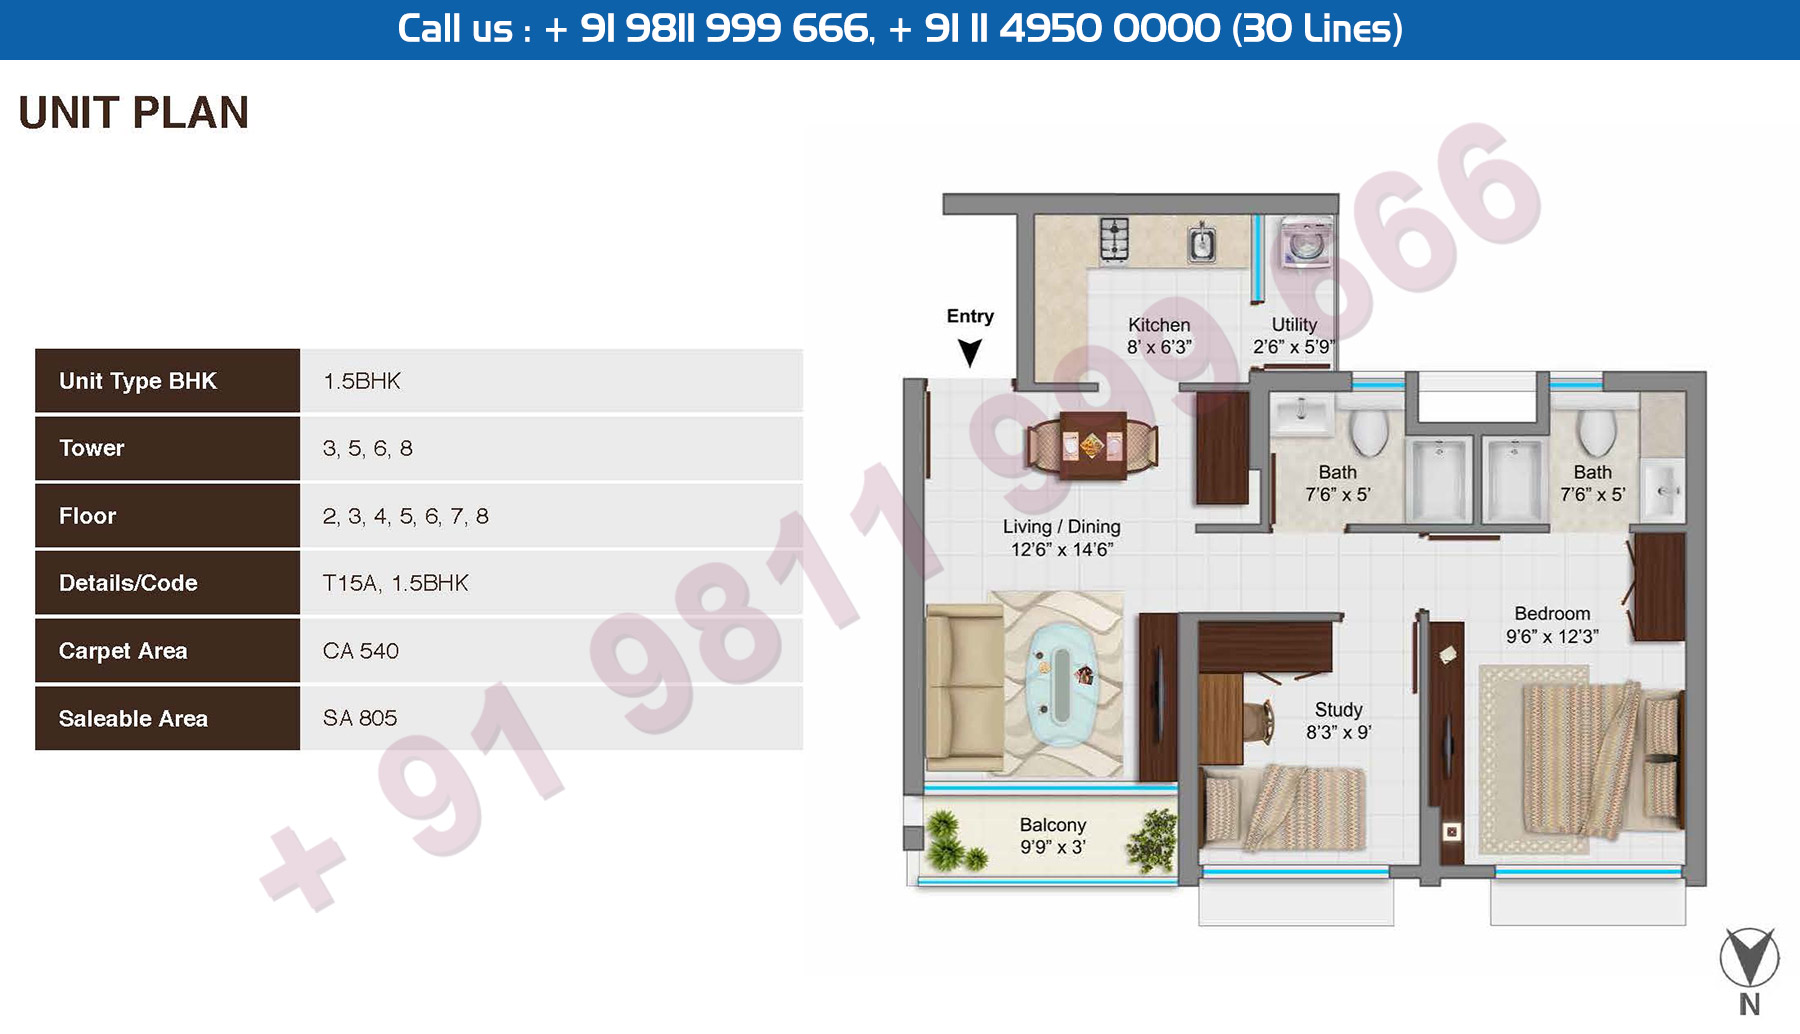 1.5 BHK Small : 805 Sq.Ft.